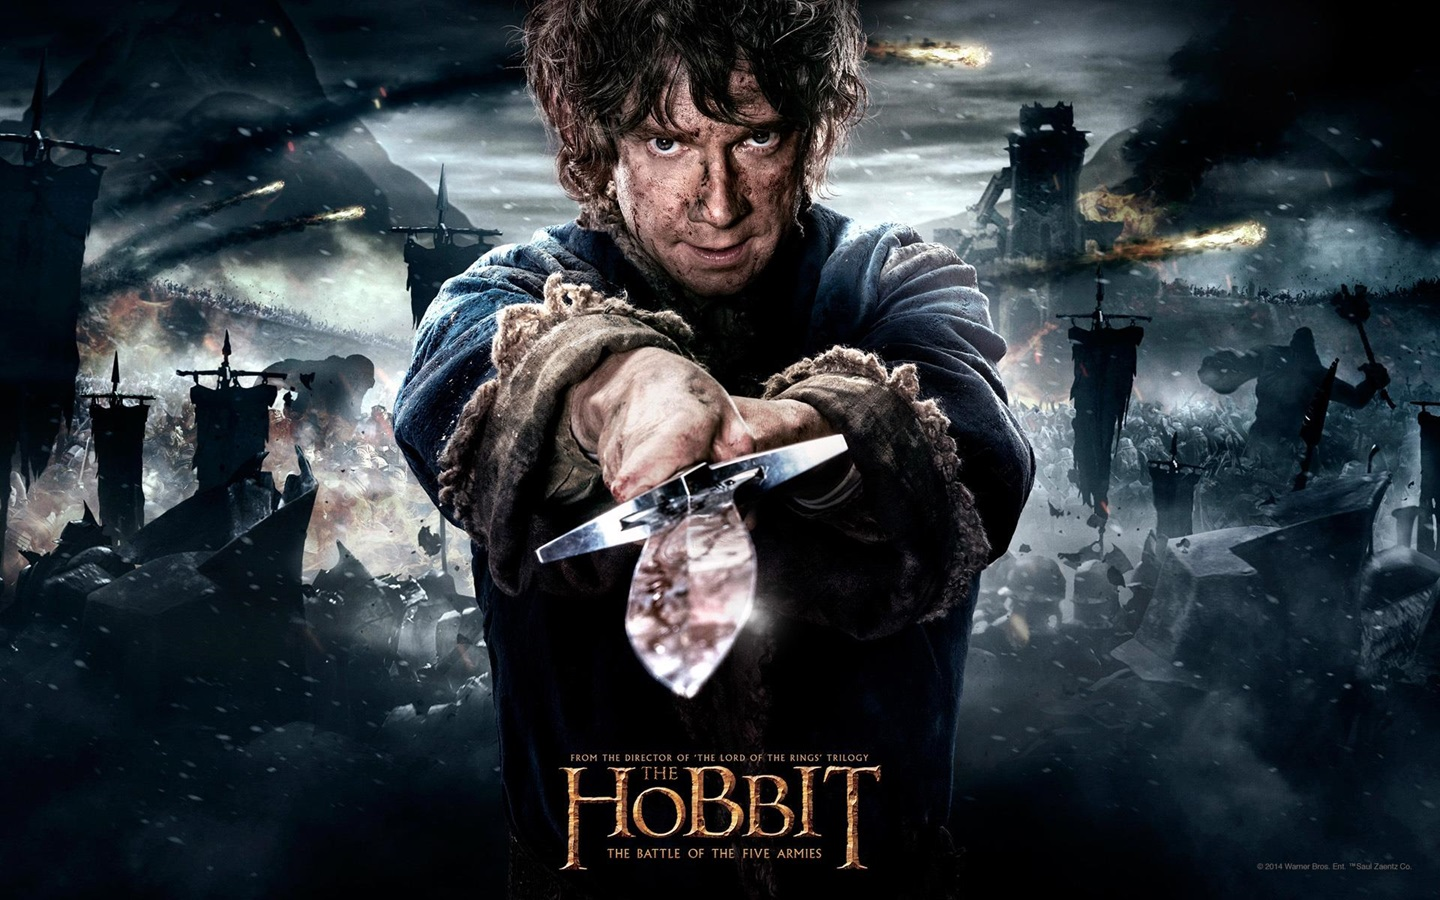 the hobbit movie wallpapers - photo #39